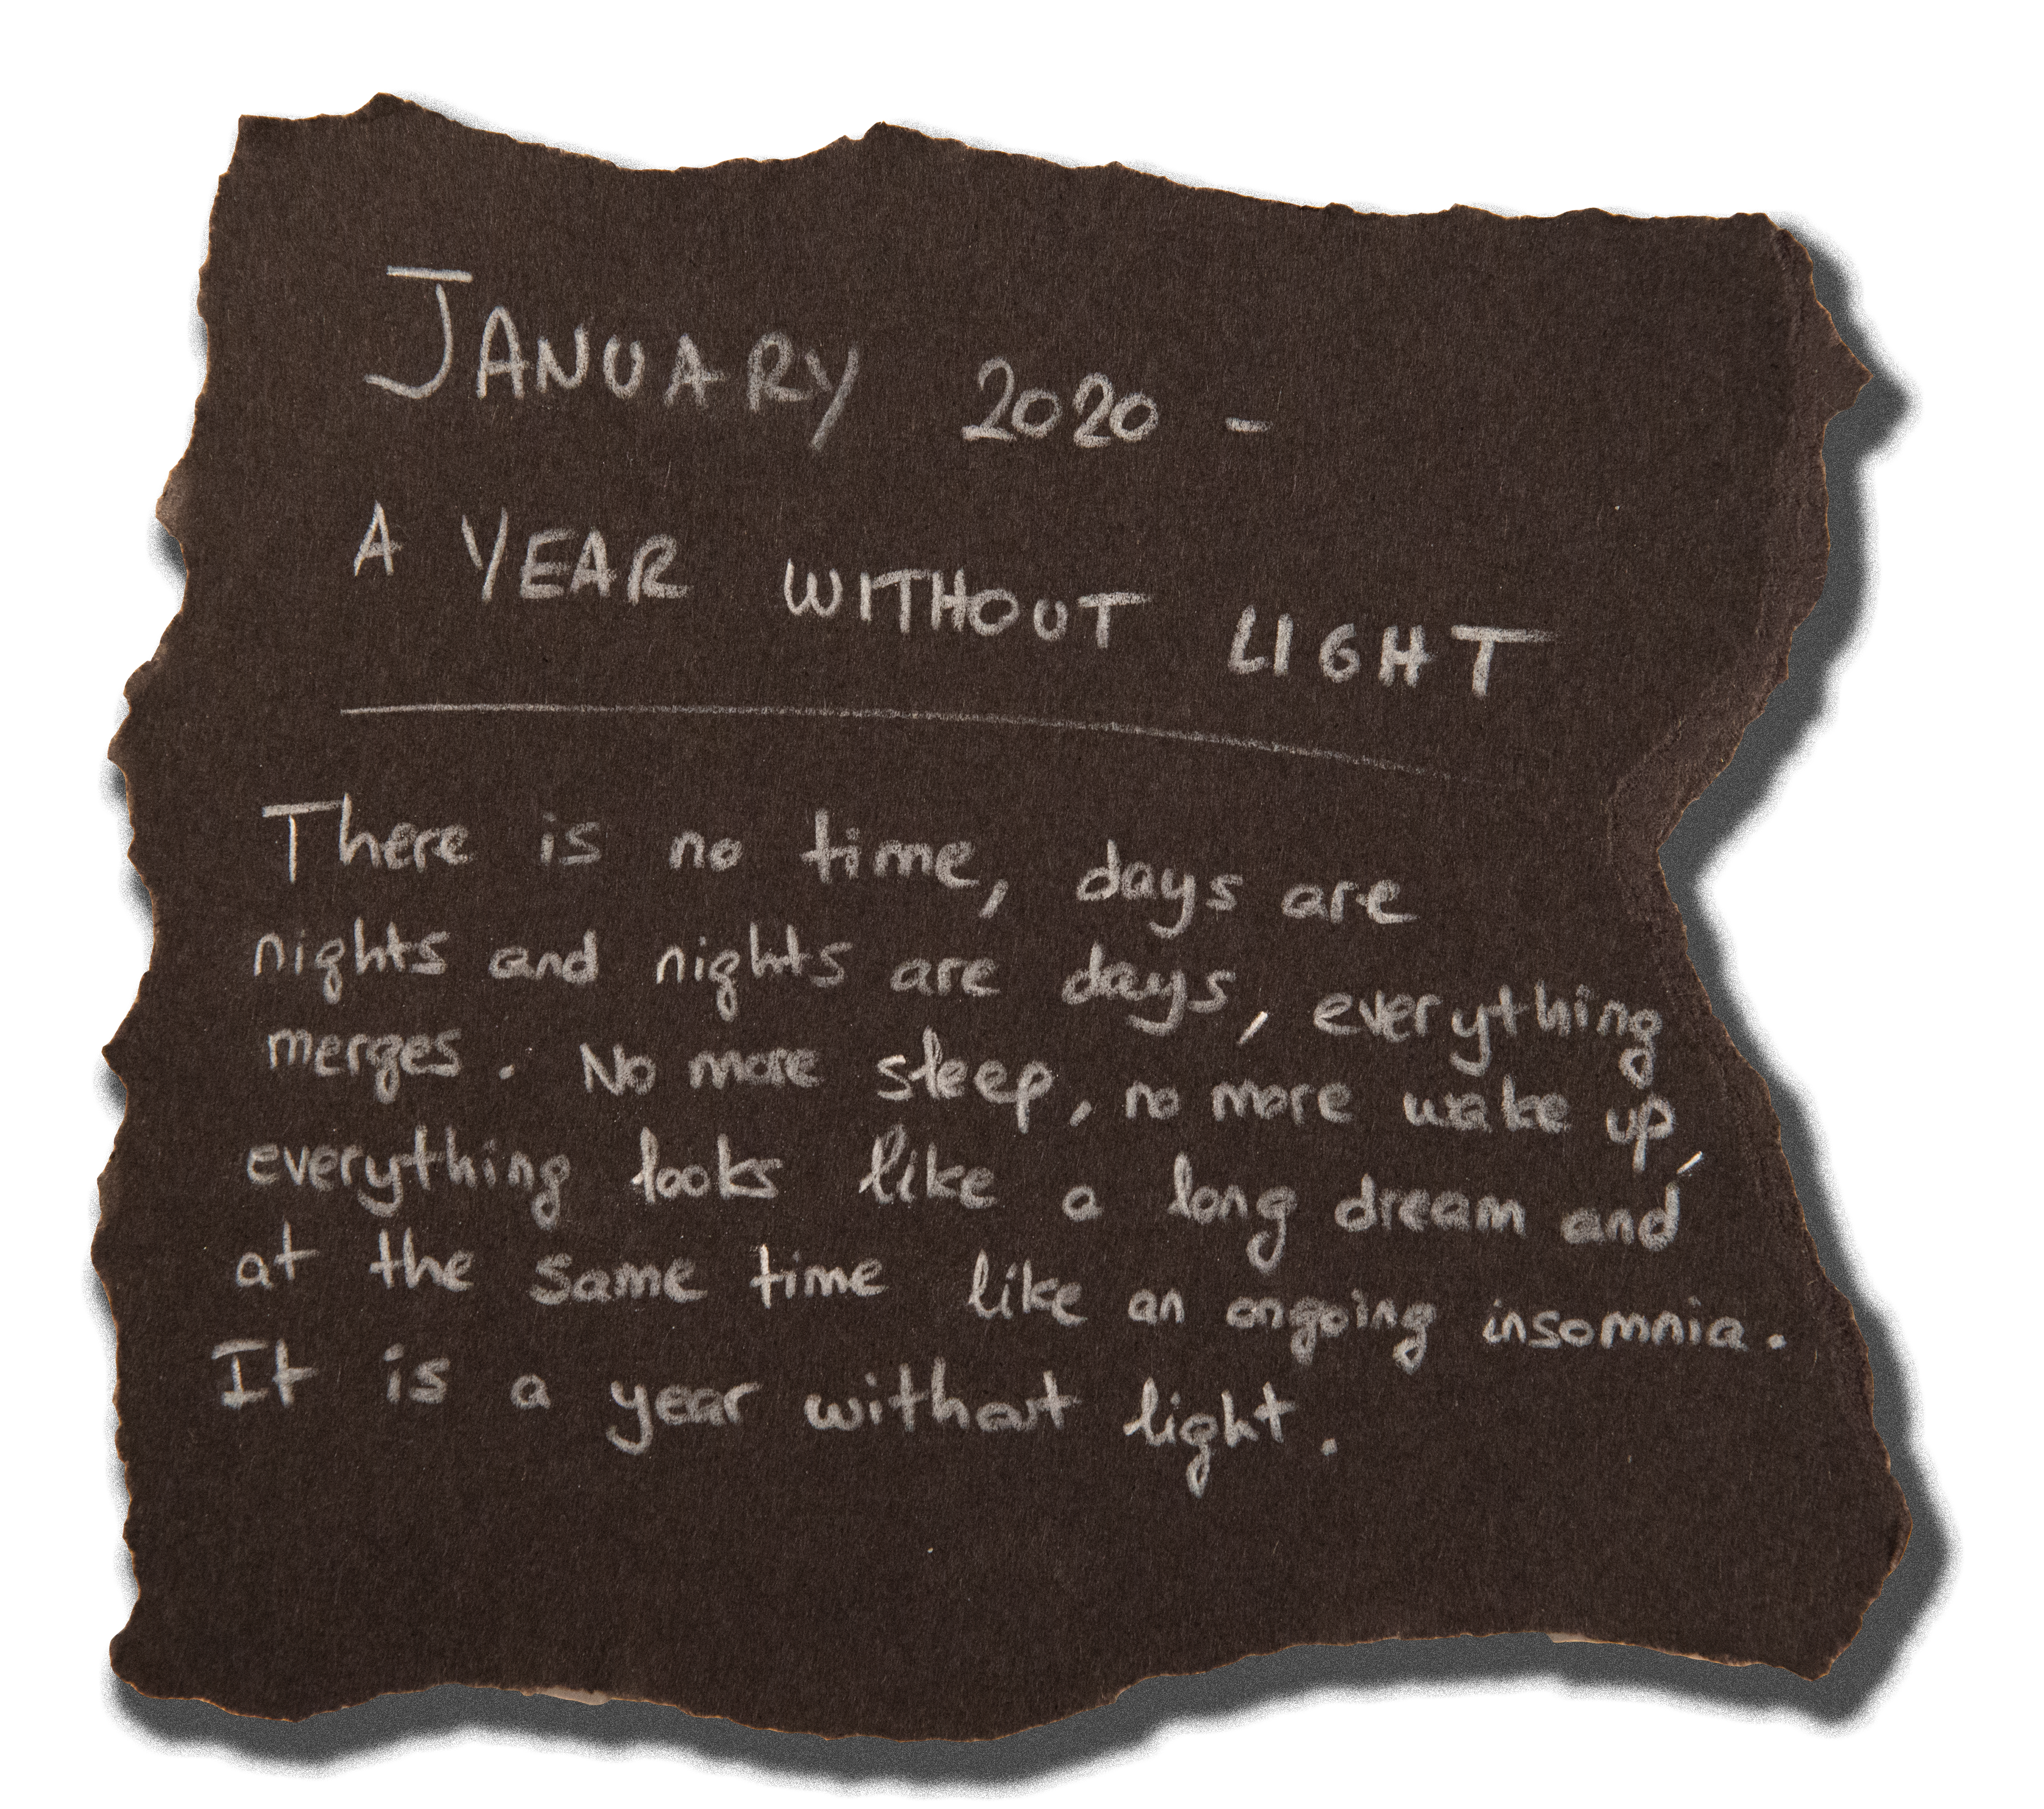 #4 - JANUARY 2020 - A YEAR WITHOUT LIGHT